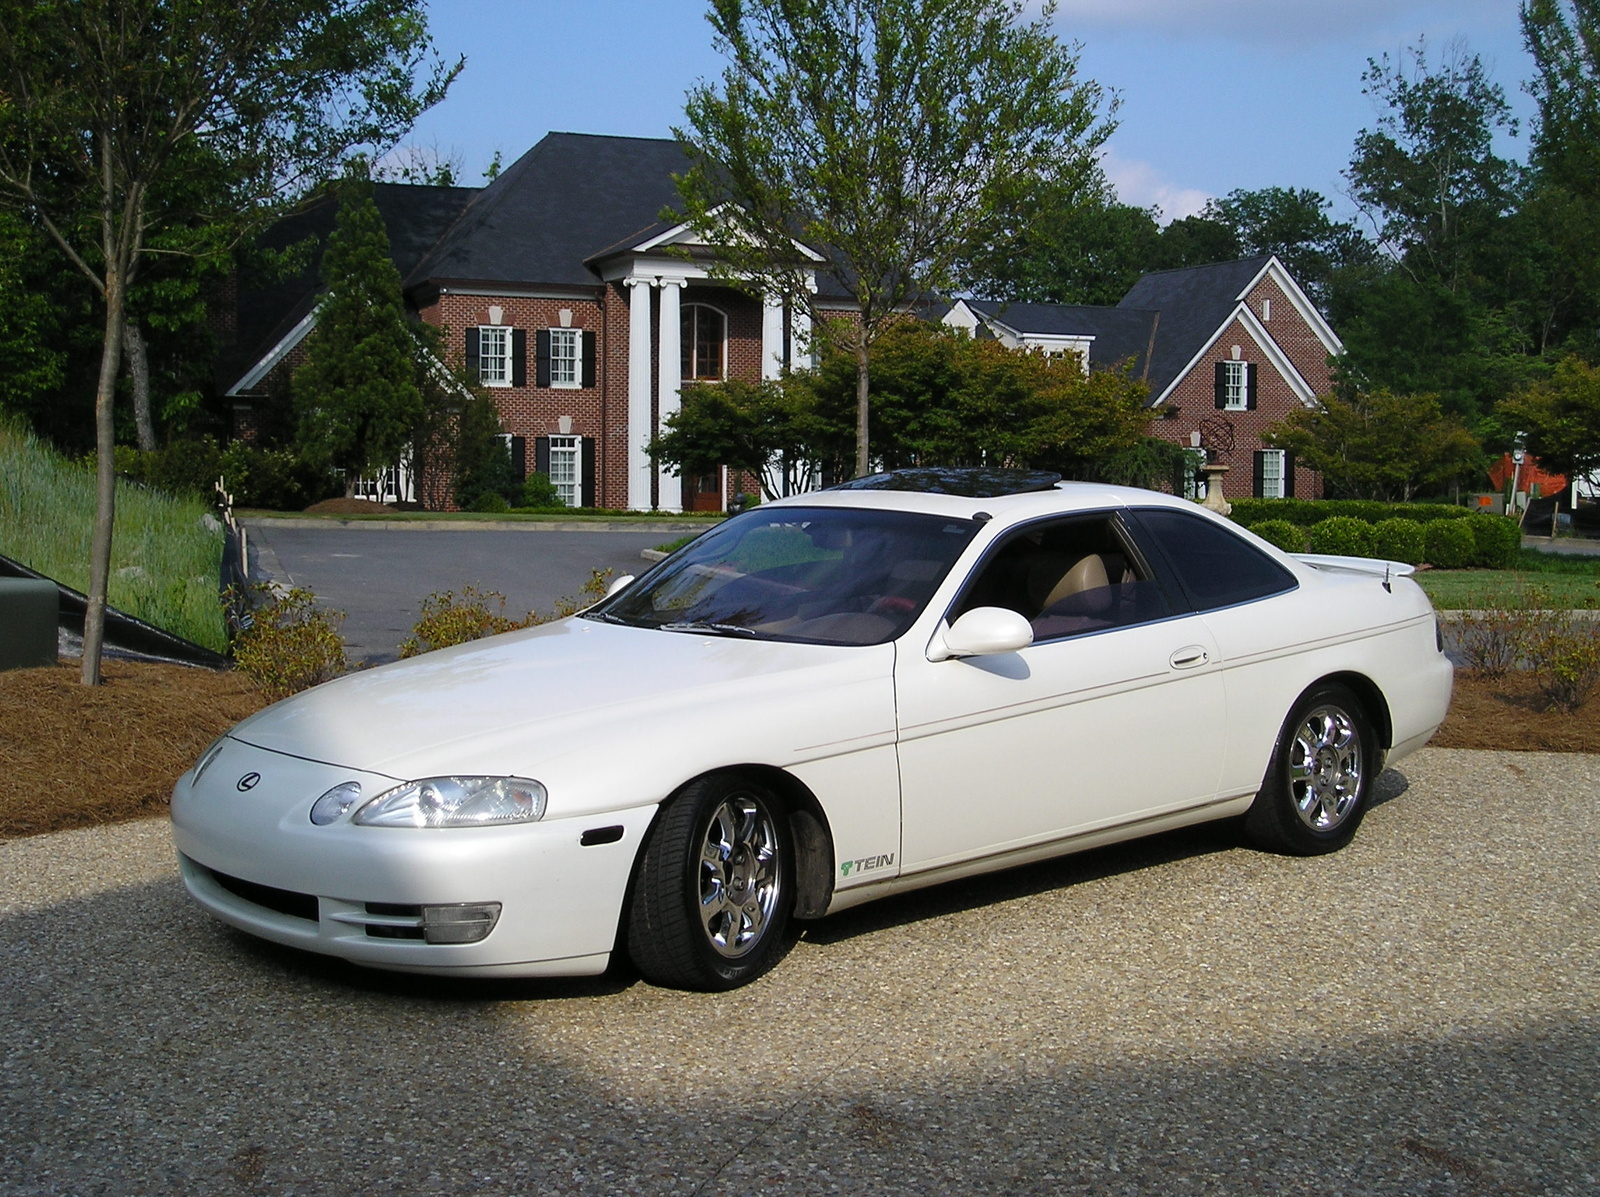 1992 Lexus Sc 400 User Reviews Cargurus Upcomingcarshq Com